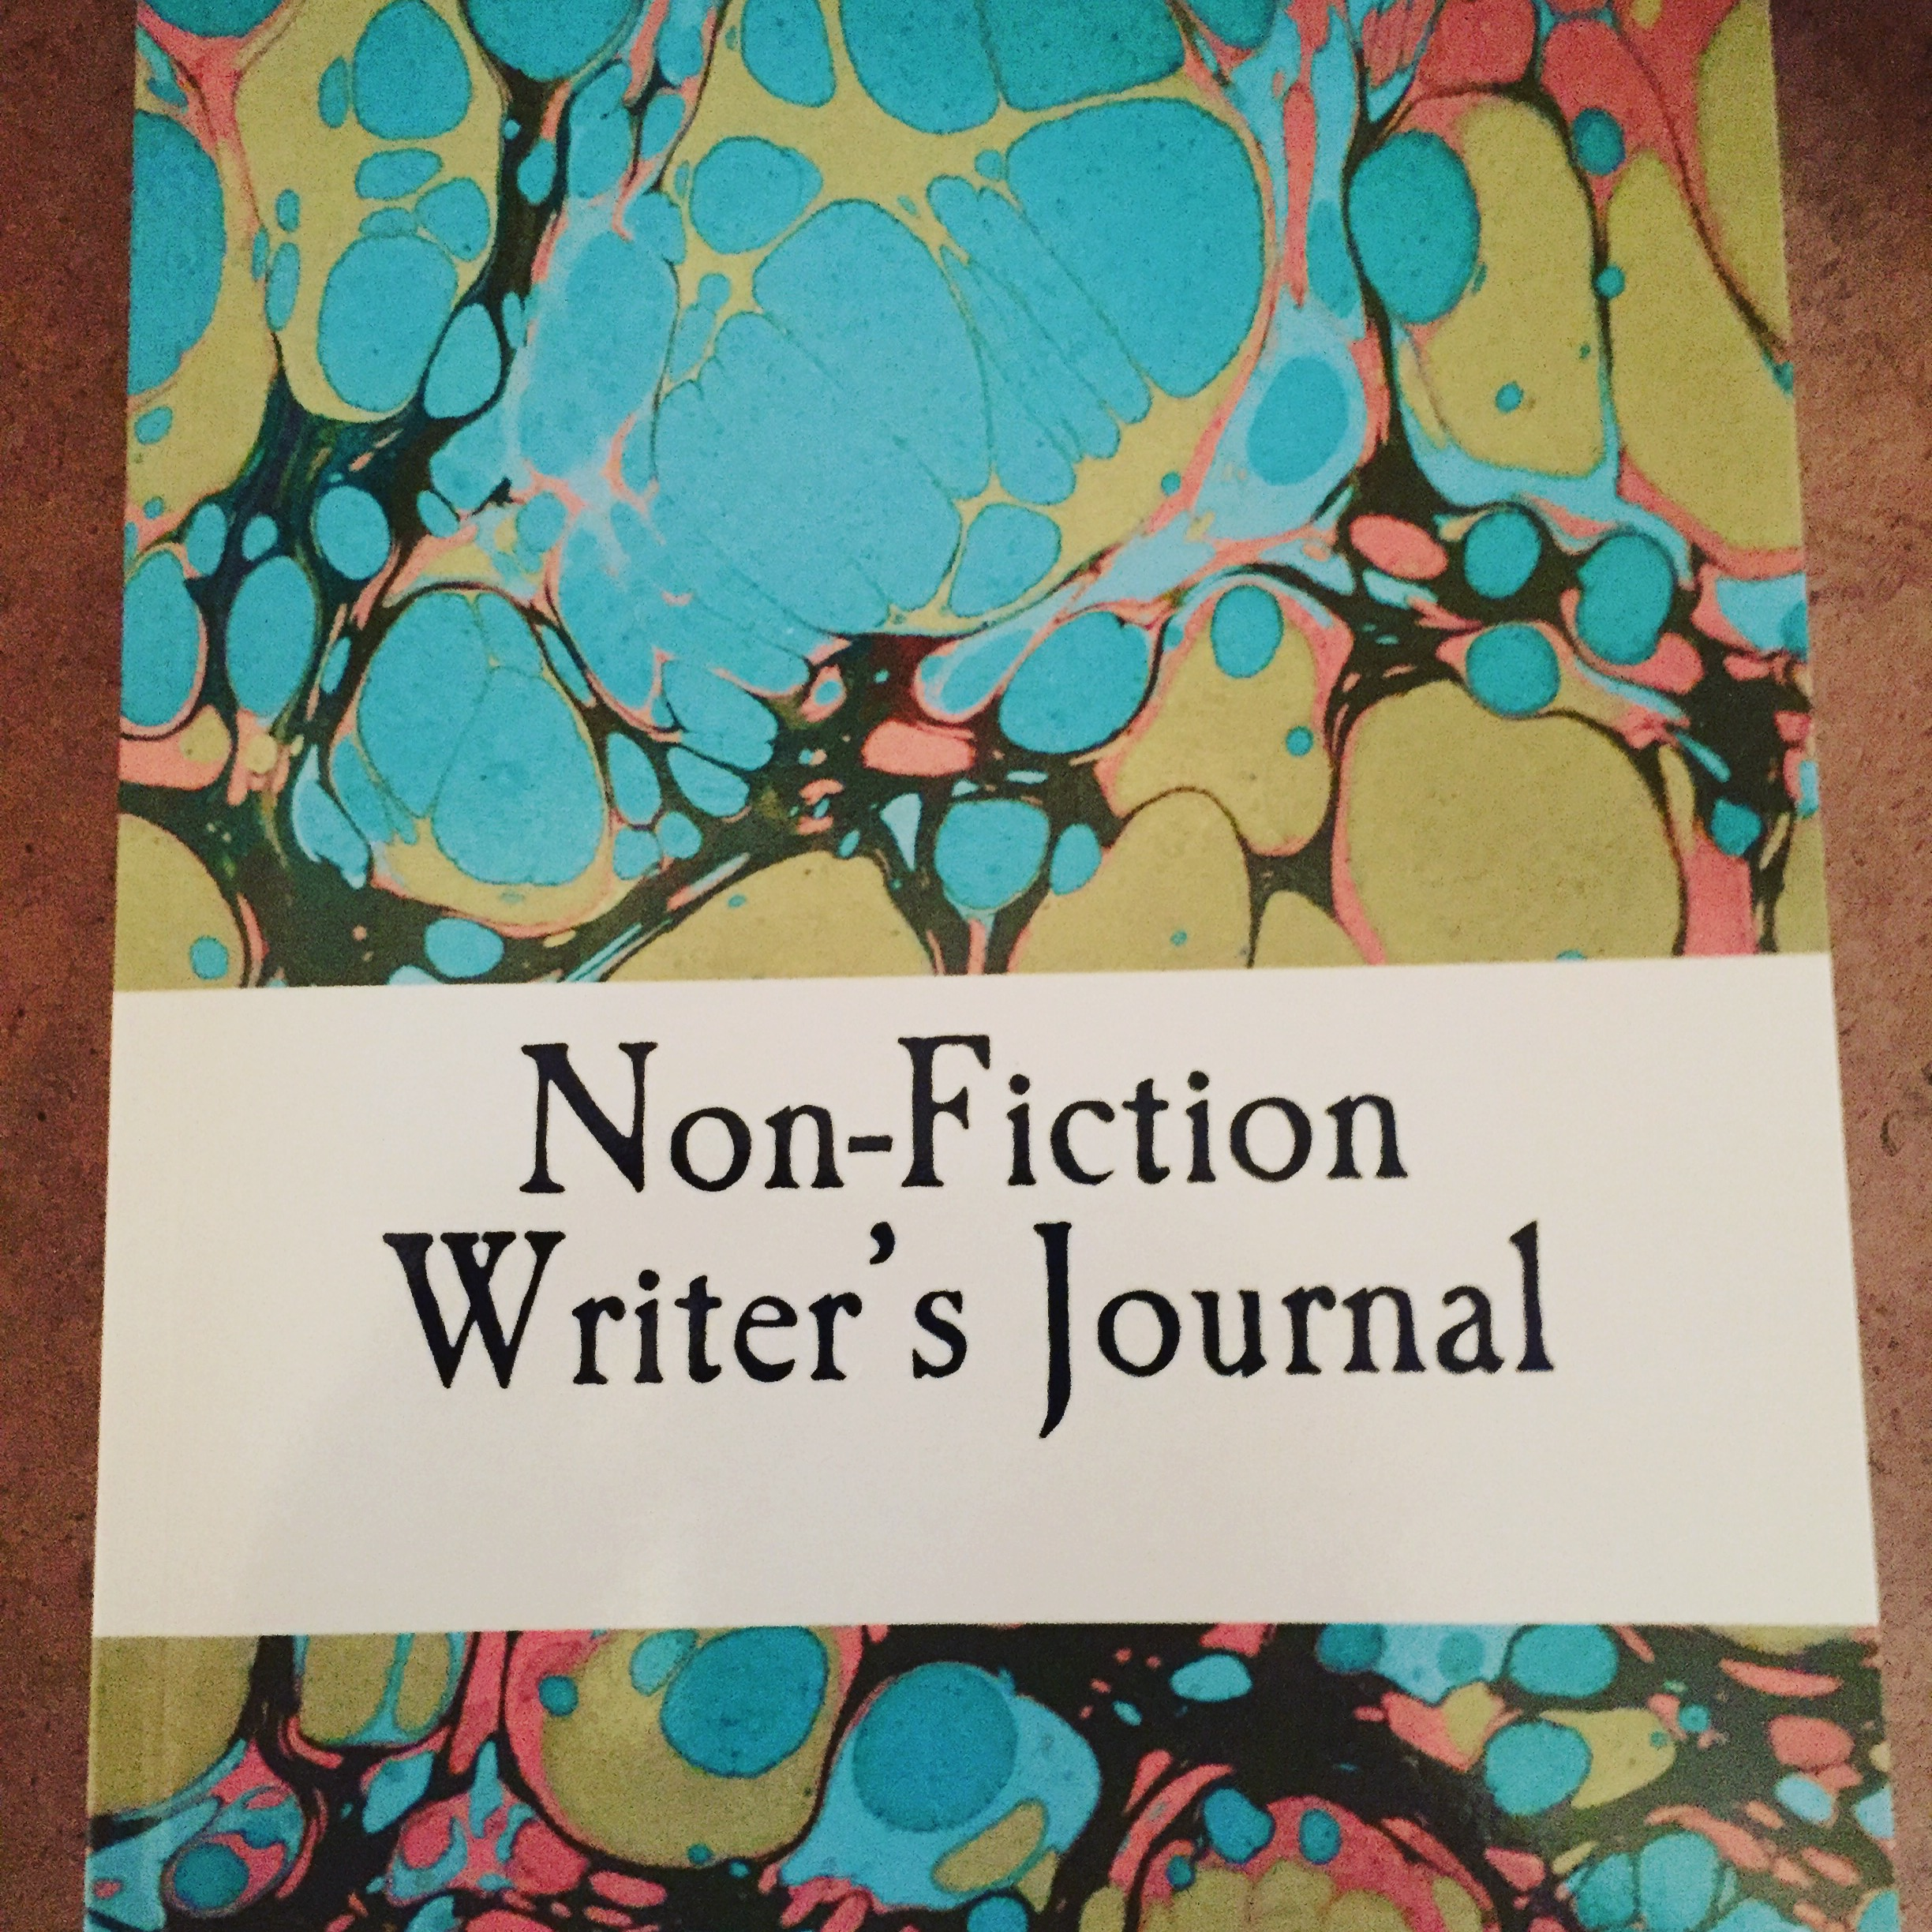 Non-Fiction Writer's Journal